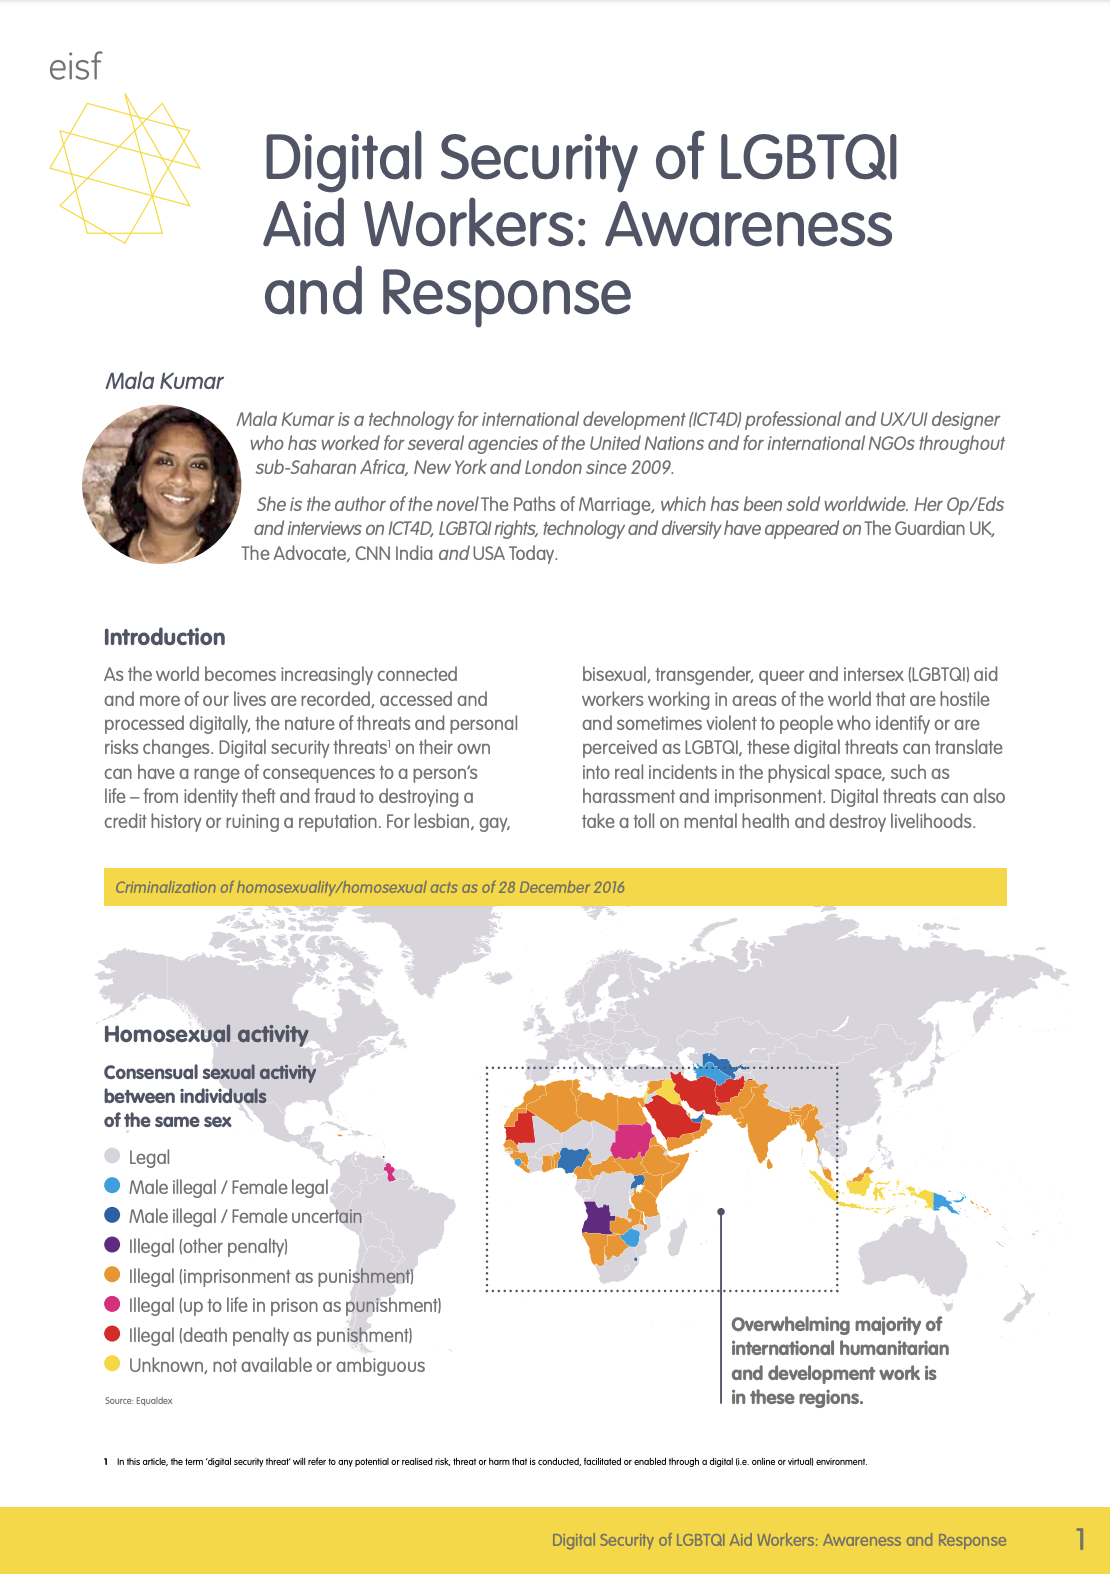 Digital Security of LGBTQI Aid Workers: Awareness and Response